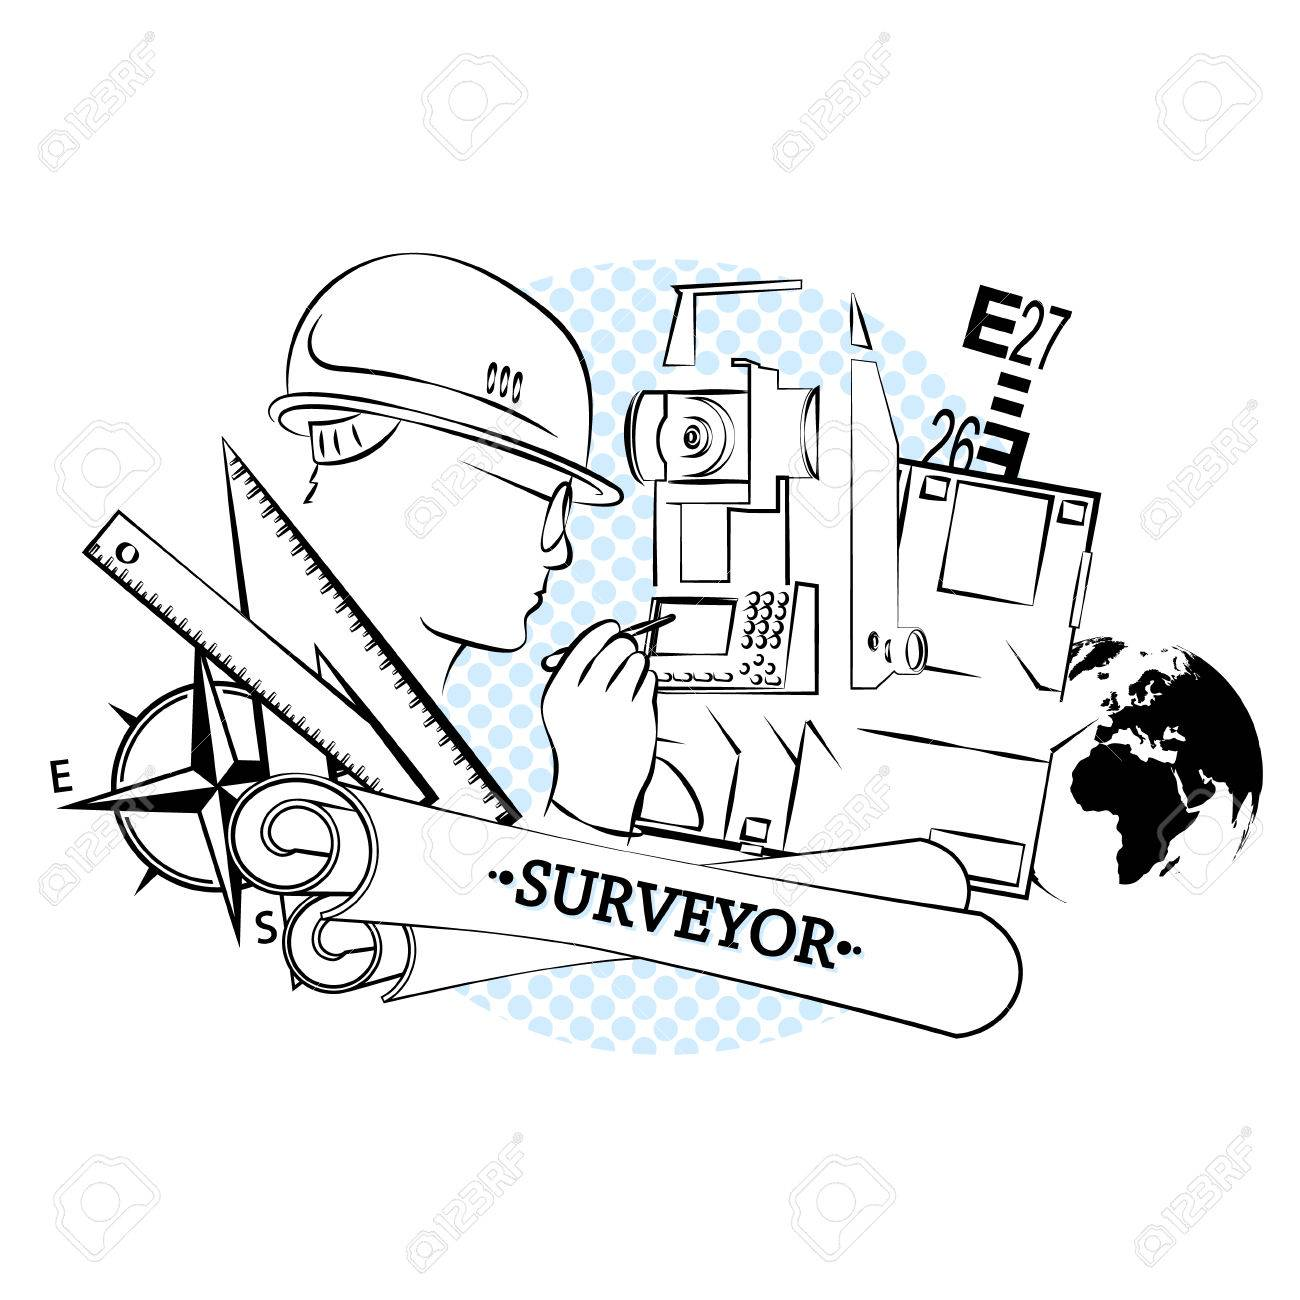 Geodesy And Architecture With Tool Silhouettes Stock Vector